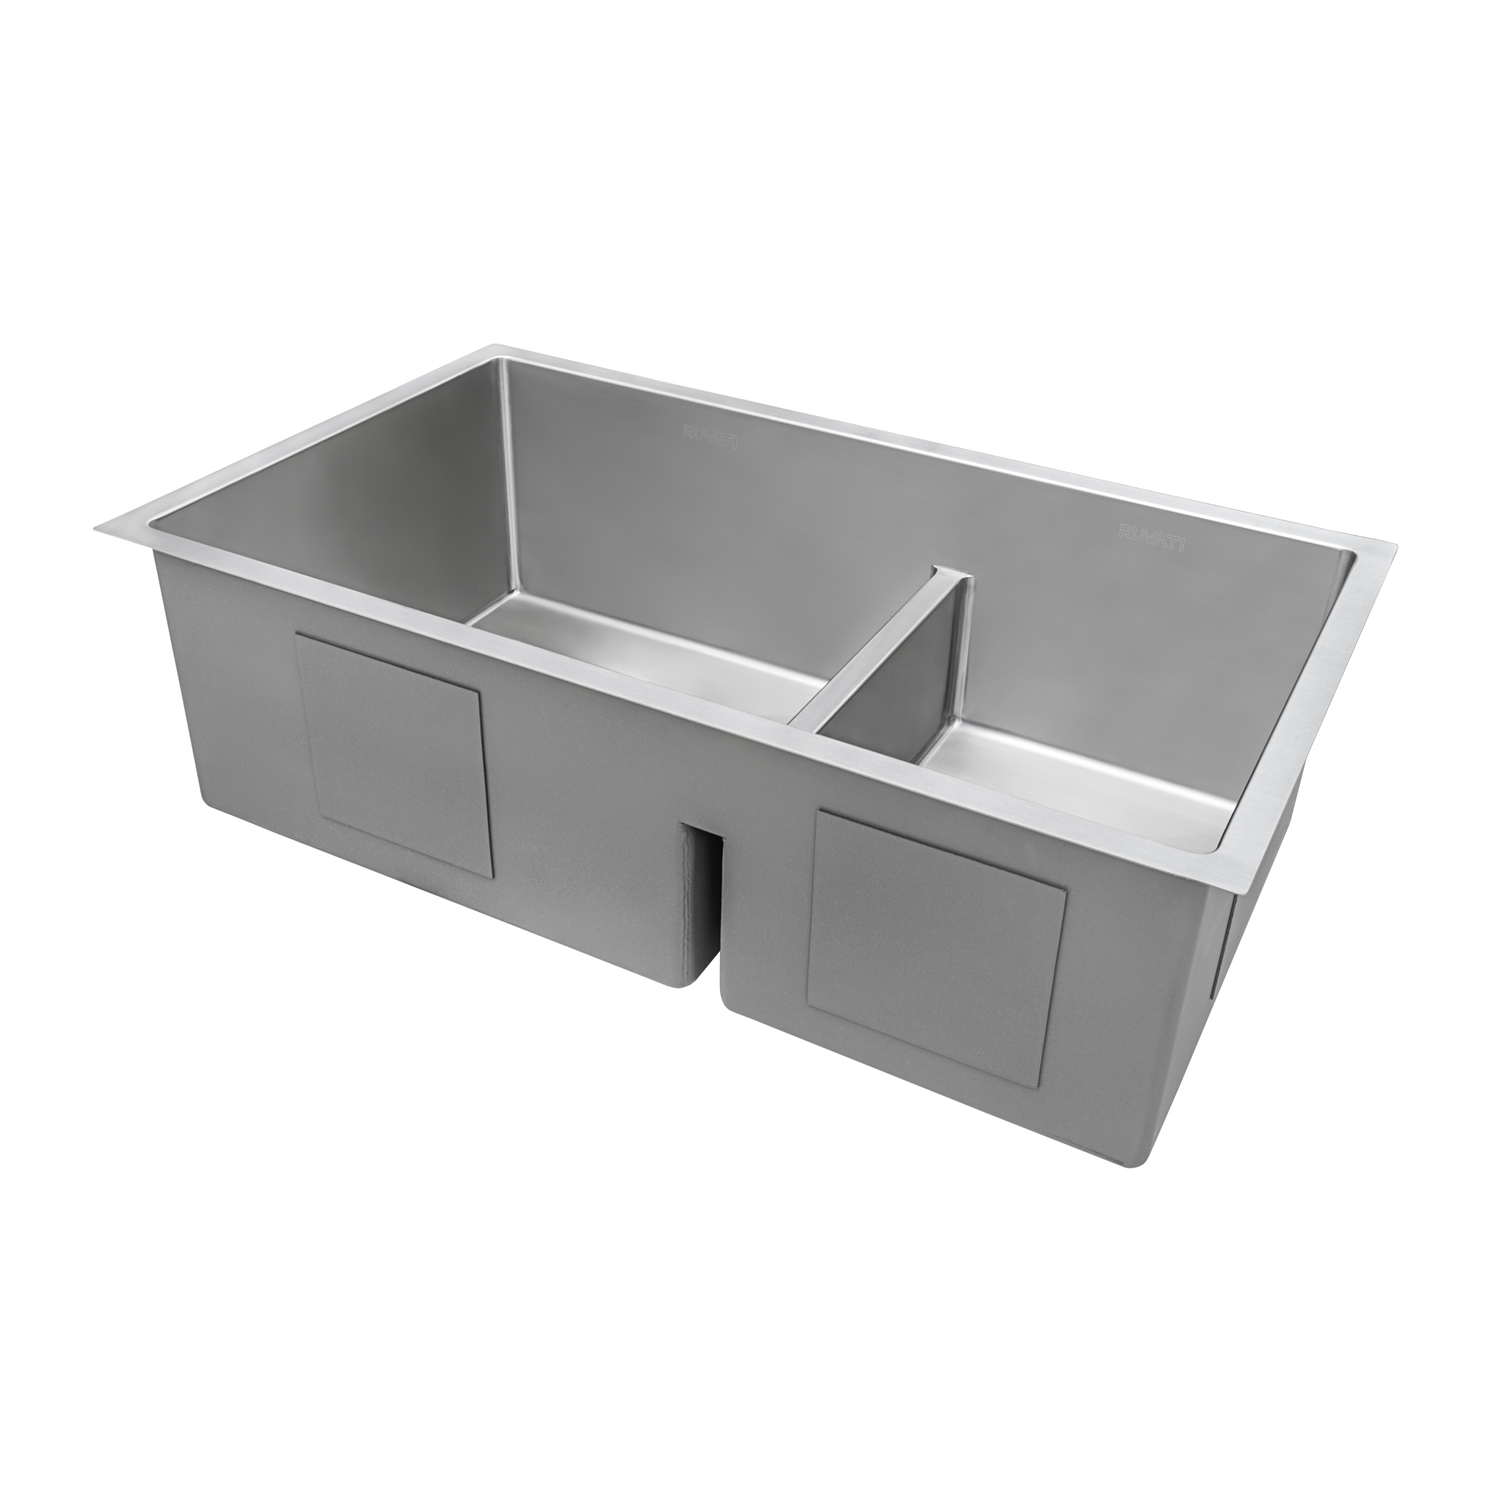 33 Inch Low Divide Undermount Tight Radius 60 40 Double Bowl 16 Gauge Stainless Steel Kitchen Sink Ruvati Usa